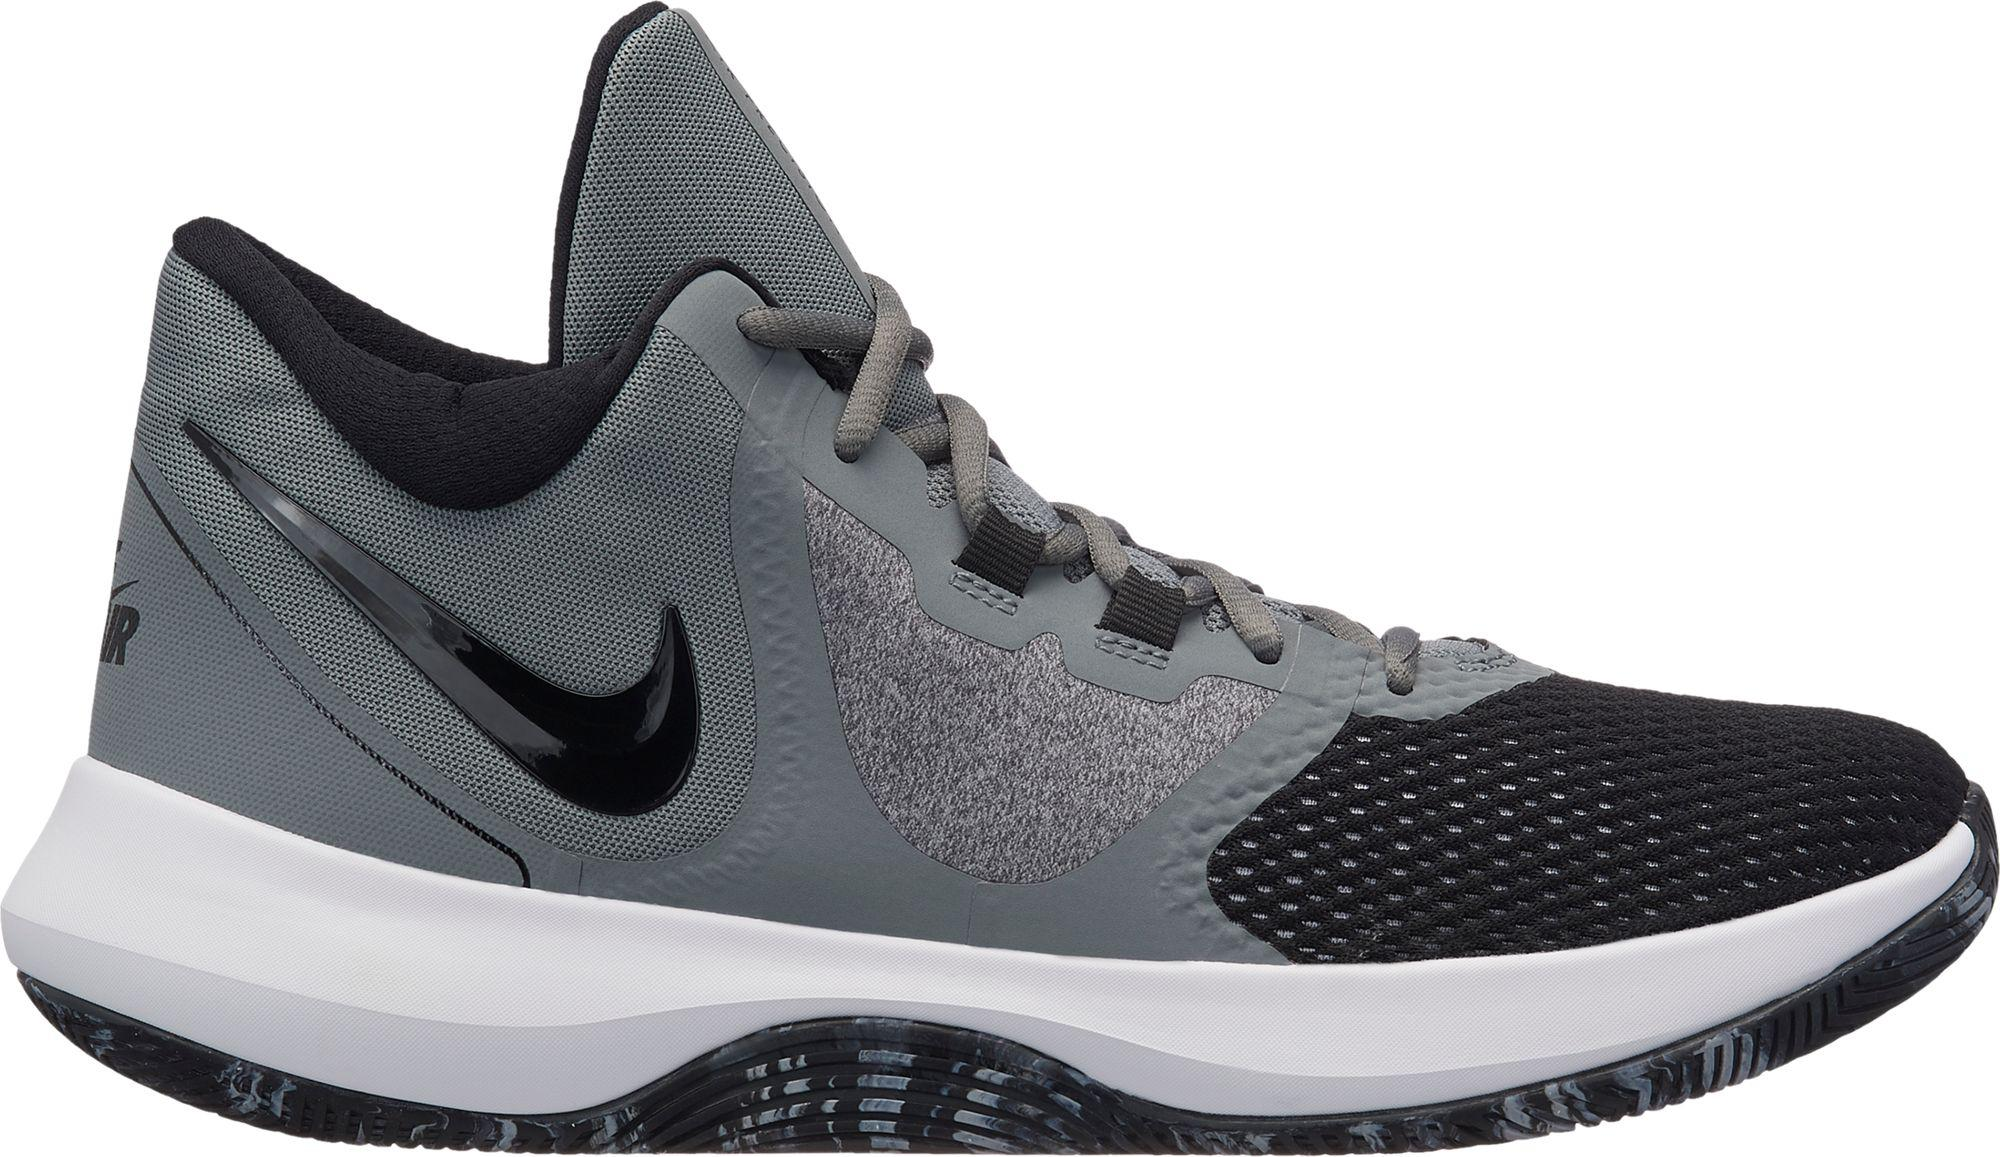 1c5c22582ac Lyst - Nike Air Precision Ii Basketball Shoes for Men